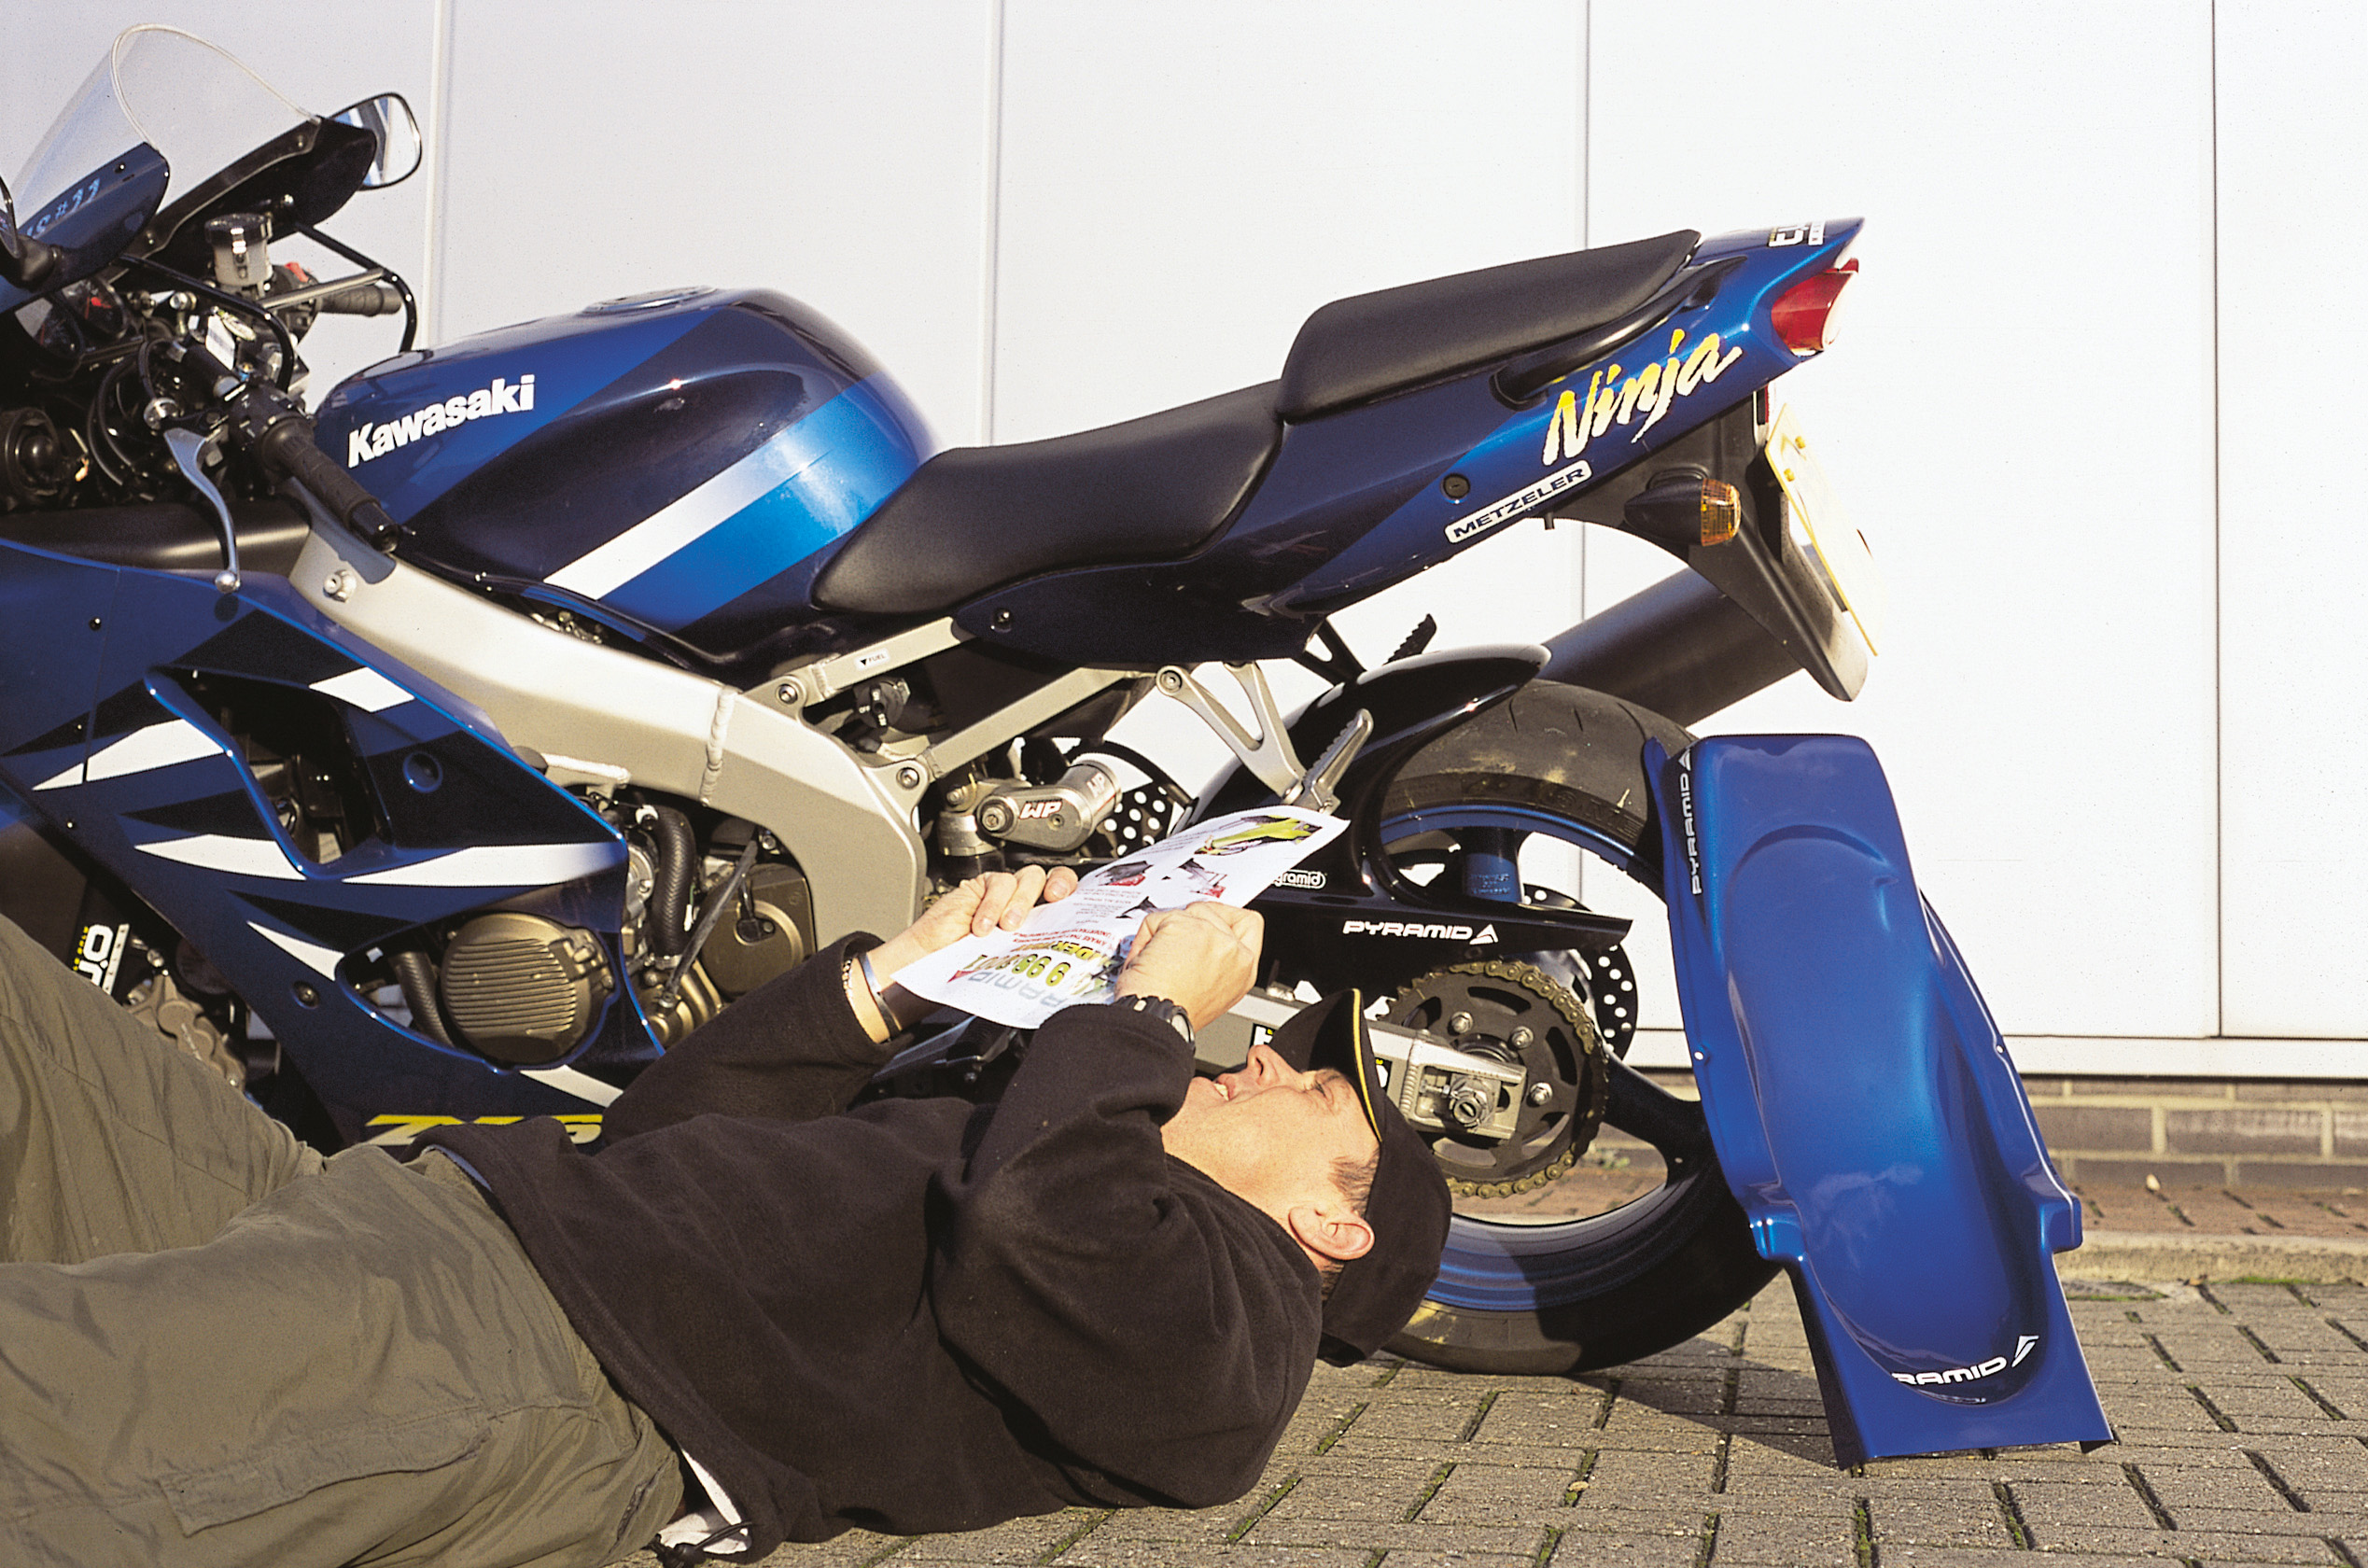 Five basics to check on your motorcycle